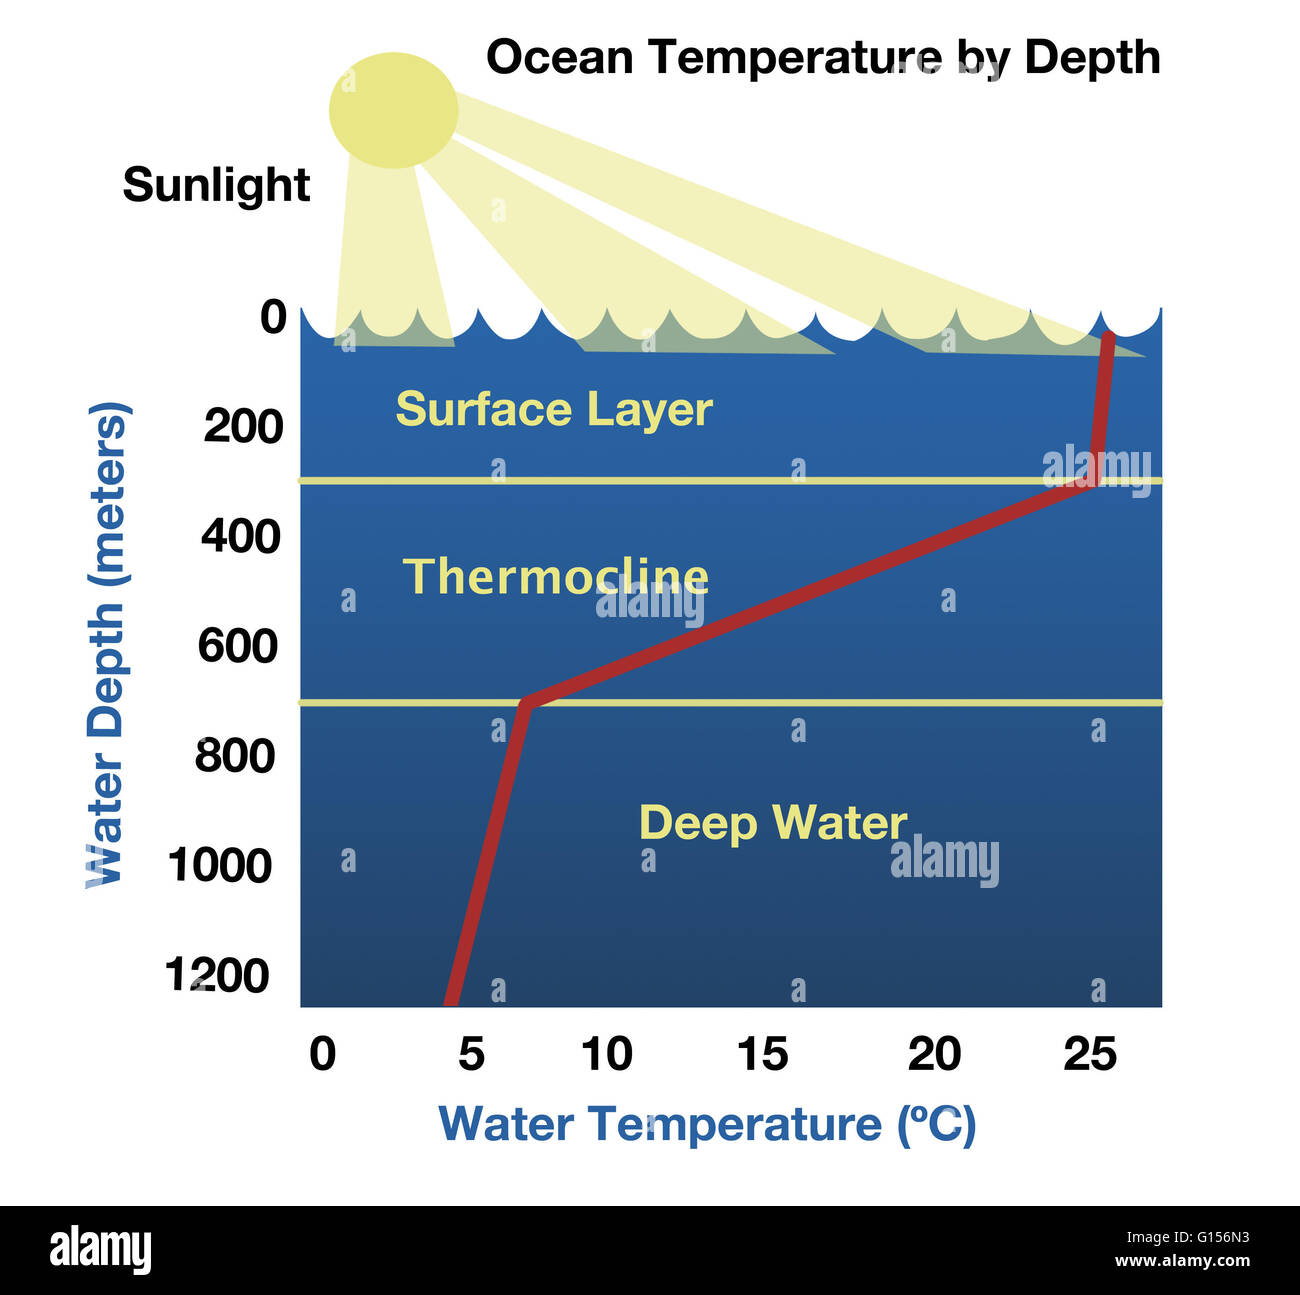 Diagram Showing The Temperature Of The Ocean By Depth